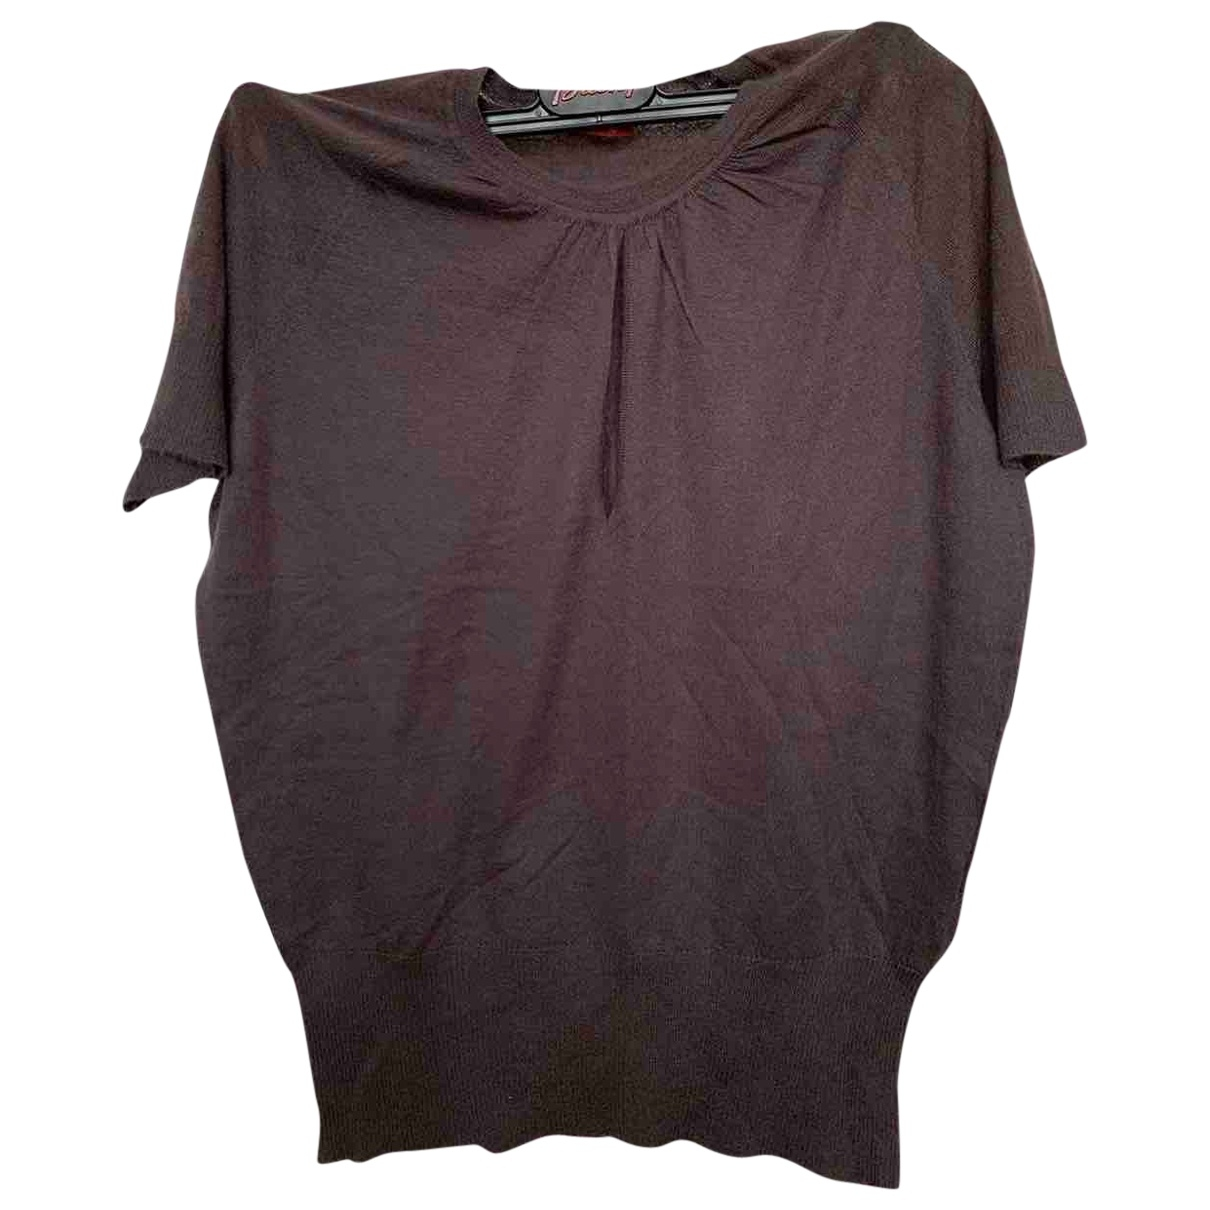 Brioni \N Brown Cashmere  top for Women 42 FR